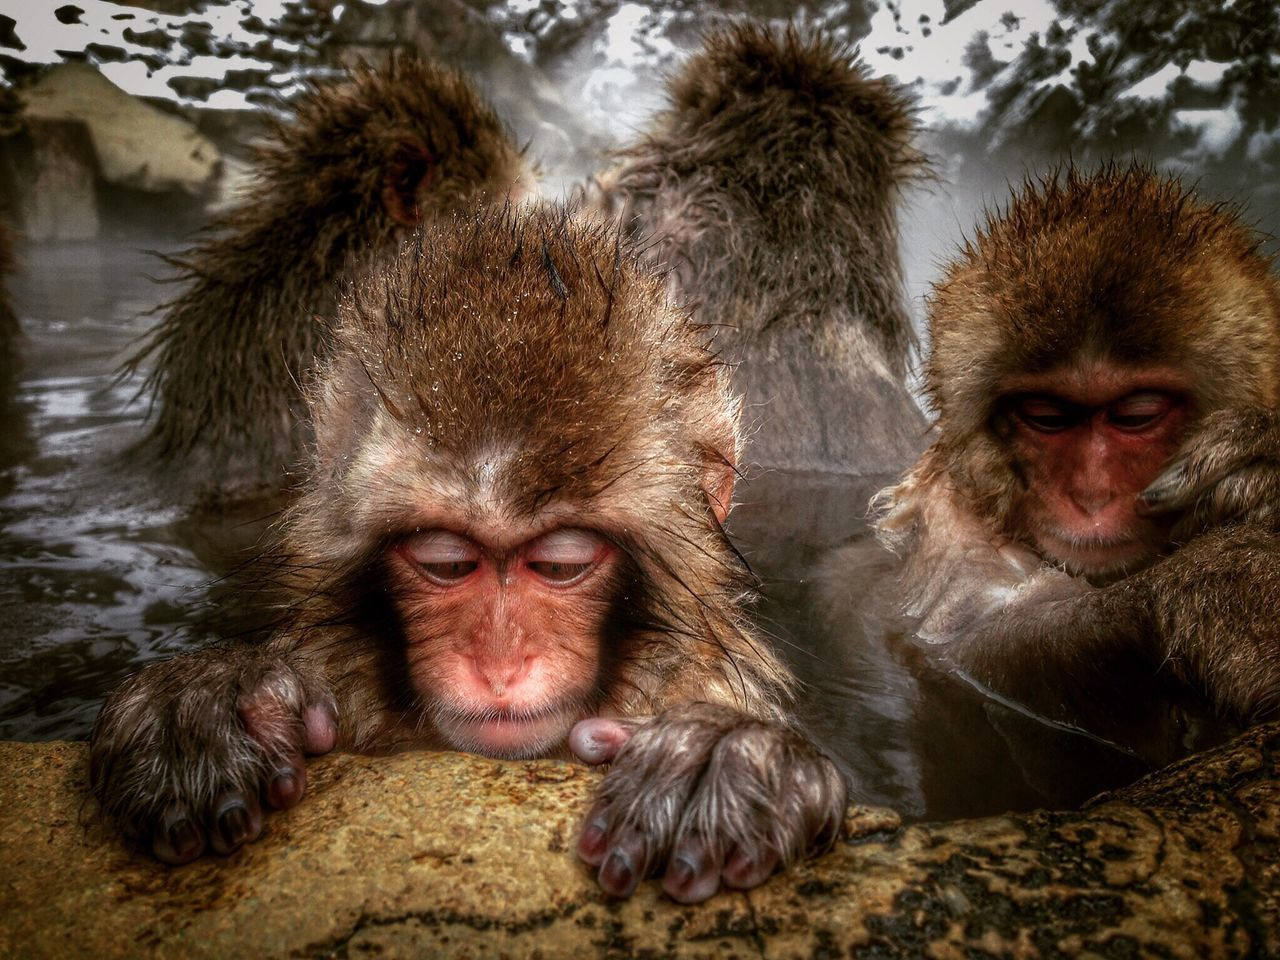 Monkey Snowmonkey Japanese Macaque Baby Snow Monkey Monkey Brothers Bathing Bathing Monkey Onsen Hotsprings Jigokudani Jigokudani Monkey Park Nagano Japan IPhone IPhoneography